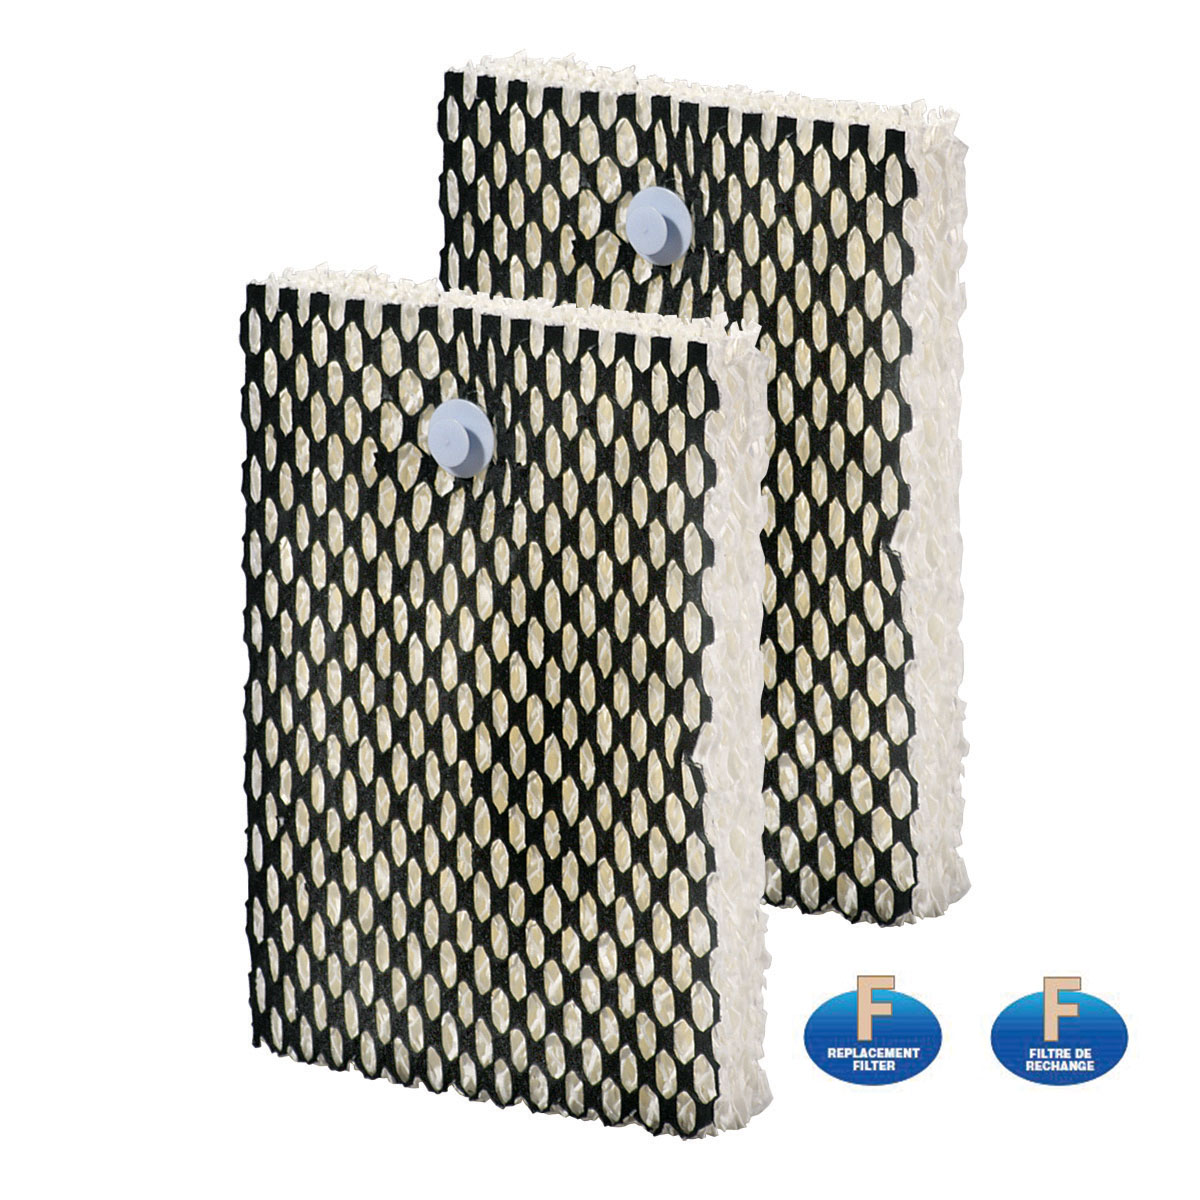 Bionaire® Washable Long-Life Cool Mist Humidifier Wick Filter, Replacement Filter F, 2-Pack